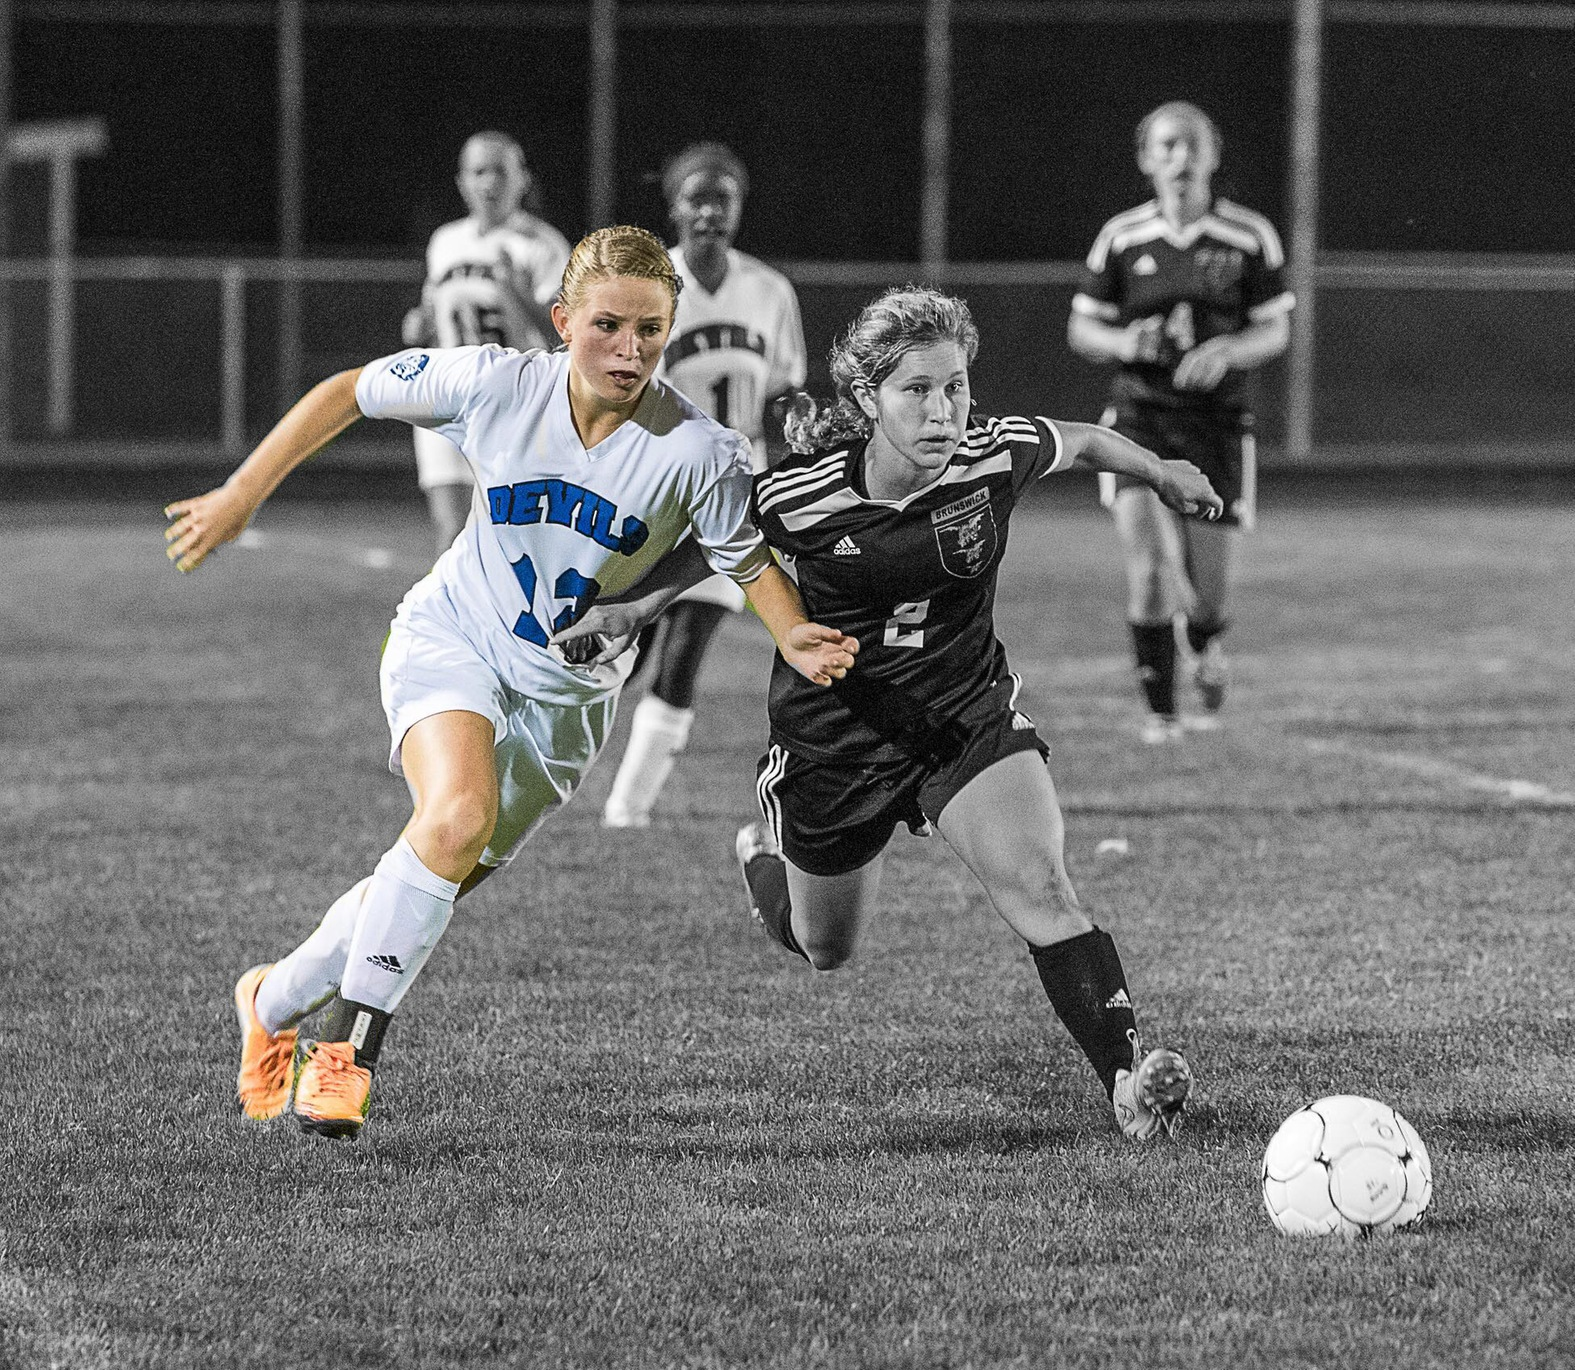 Lewiston's Gagnon latest addition to Women's Soccer recruiting class